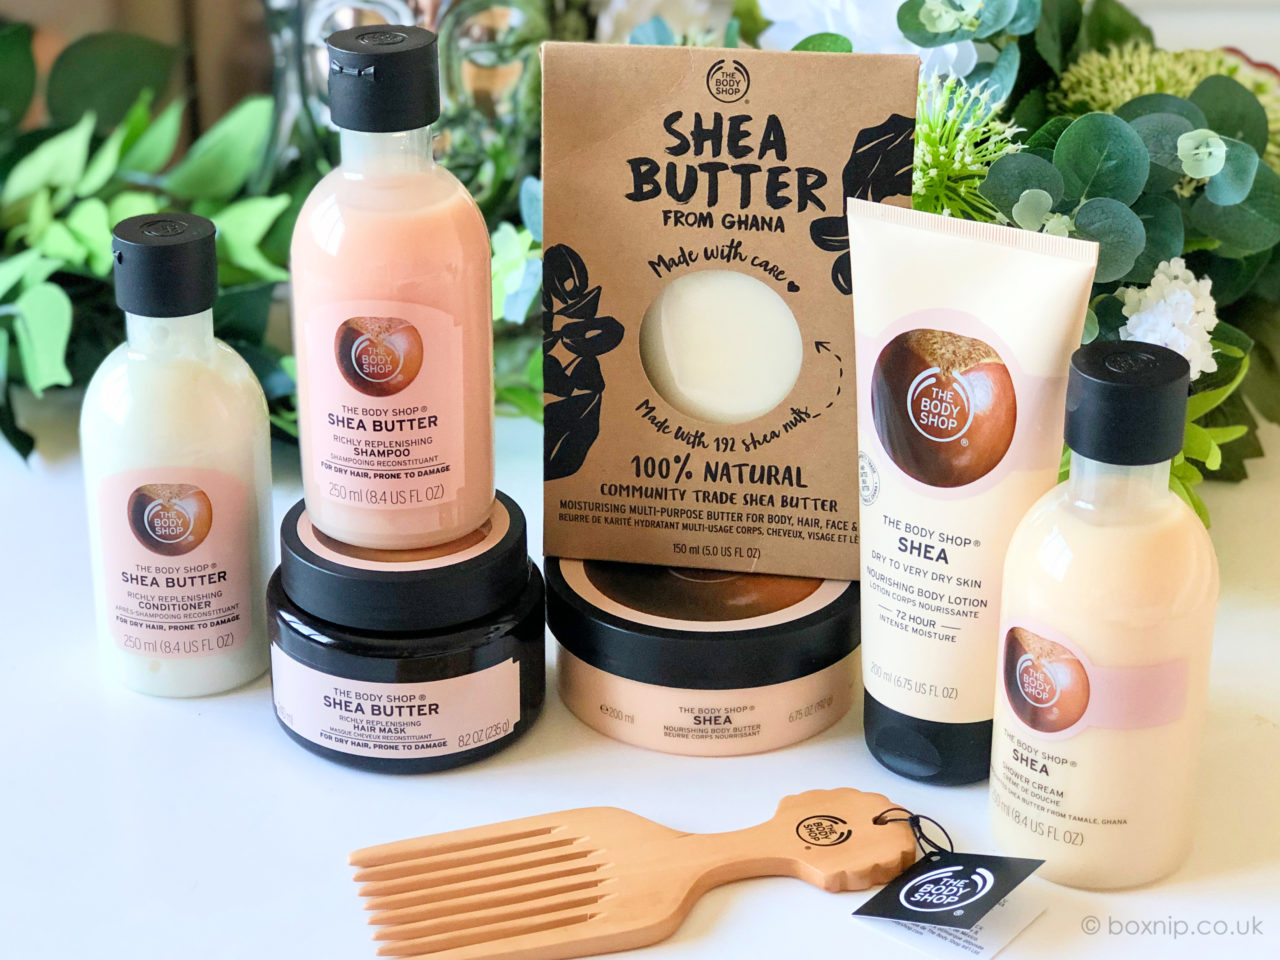 Shea Butter Range from The Body Shop